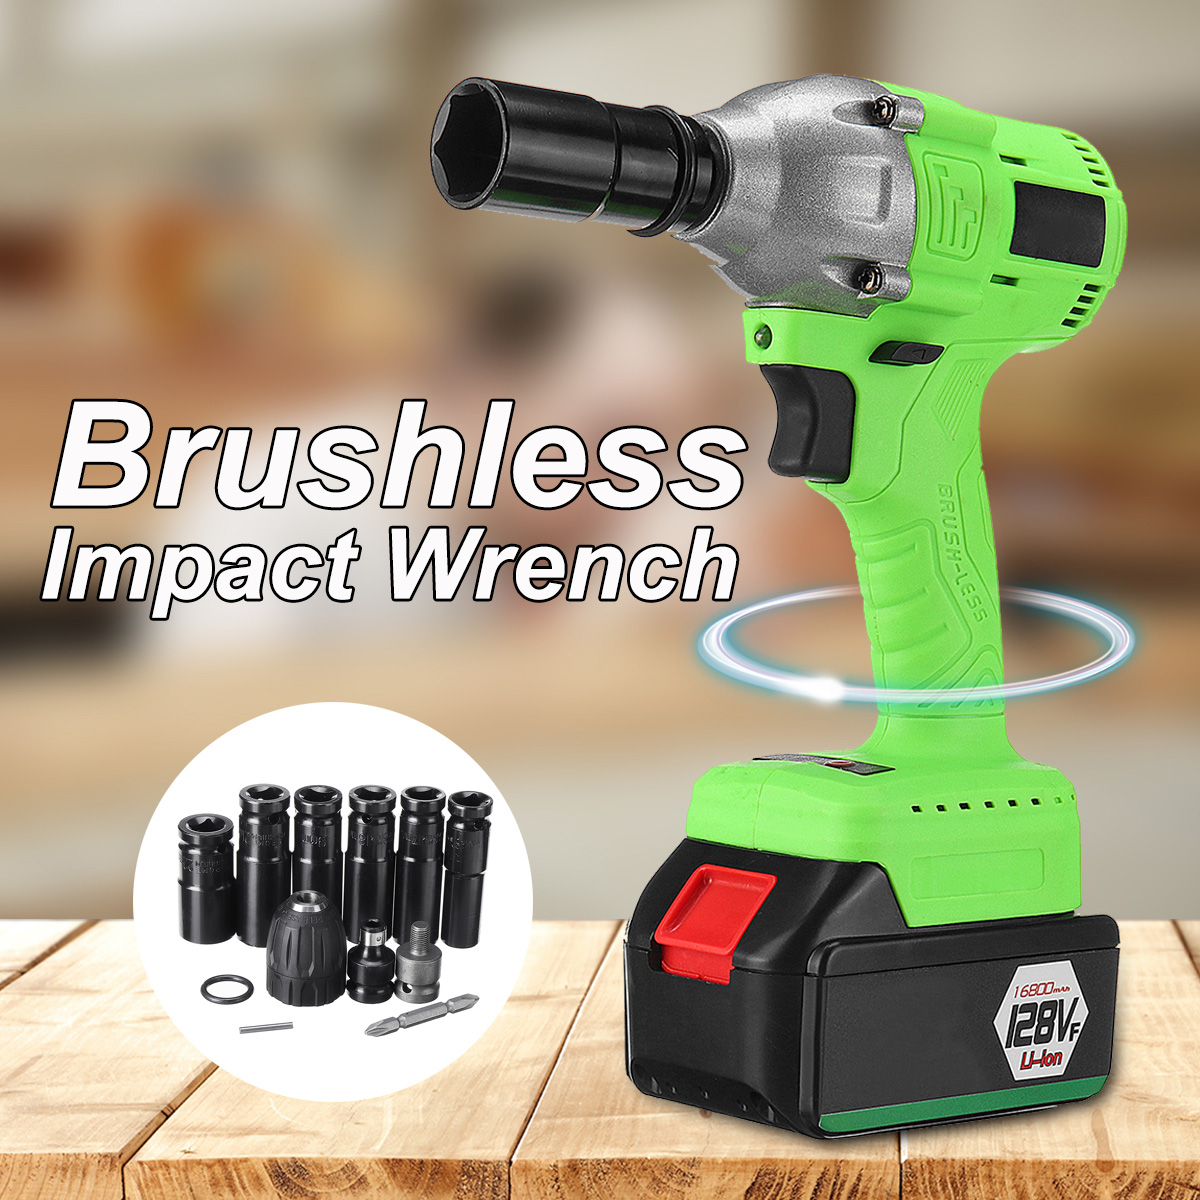 98/128/168/188VF Electric Brushless Electric Wrench Li-Ion Battery Wrench 10mm Chuk With Box Cordless Speed Control Wrench Power